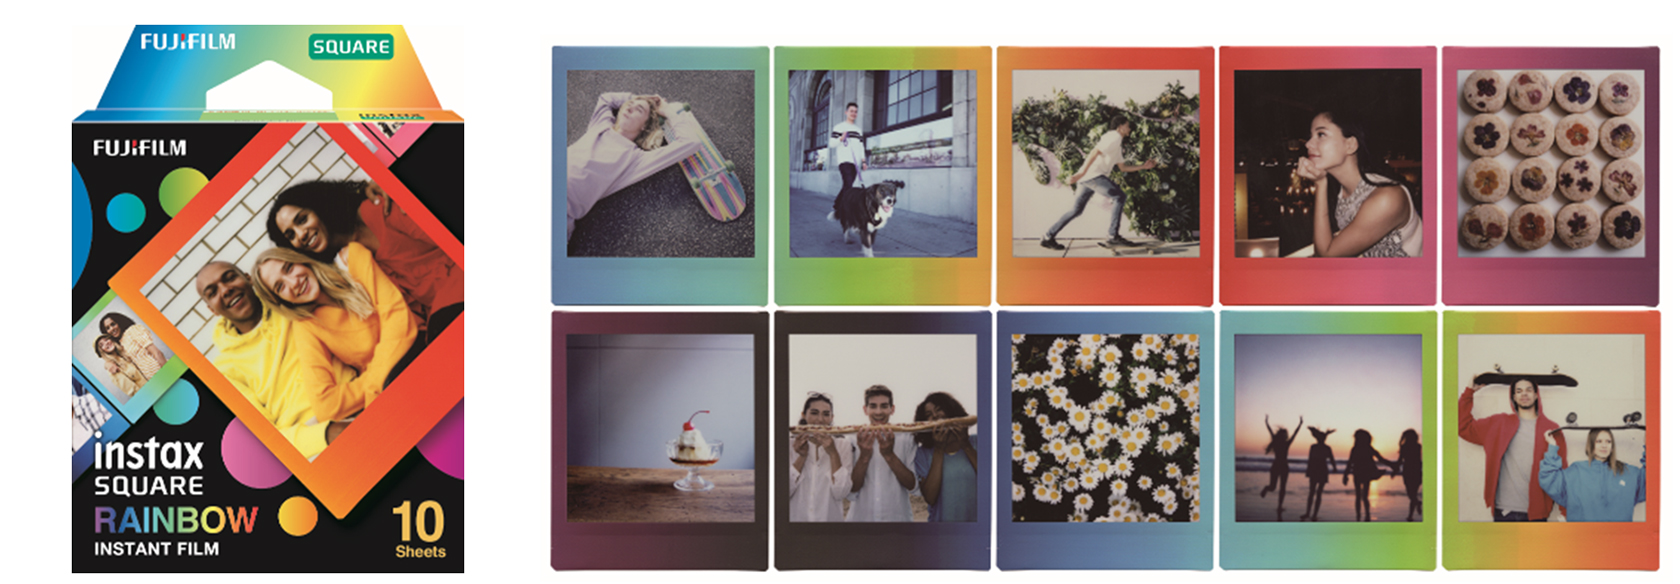 "[Image]Square format film ""RAINBOW"""